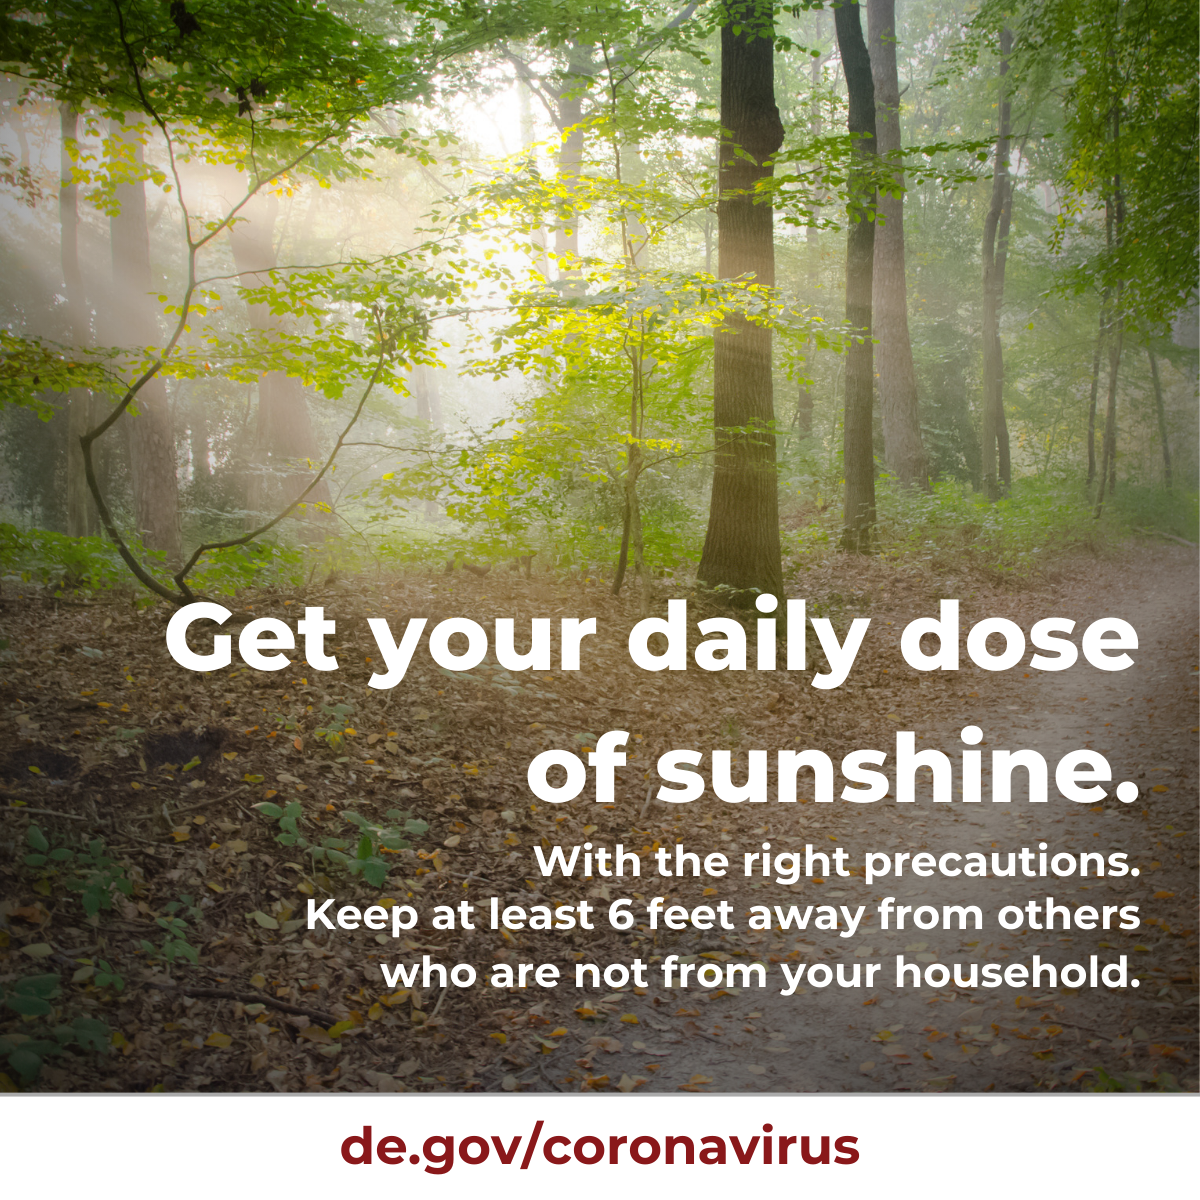 Get your daily dose of sunshine.  Use the right precautions. Keep at least 6ft away from others who are not from your household.